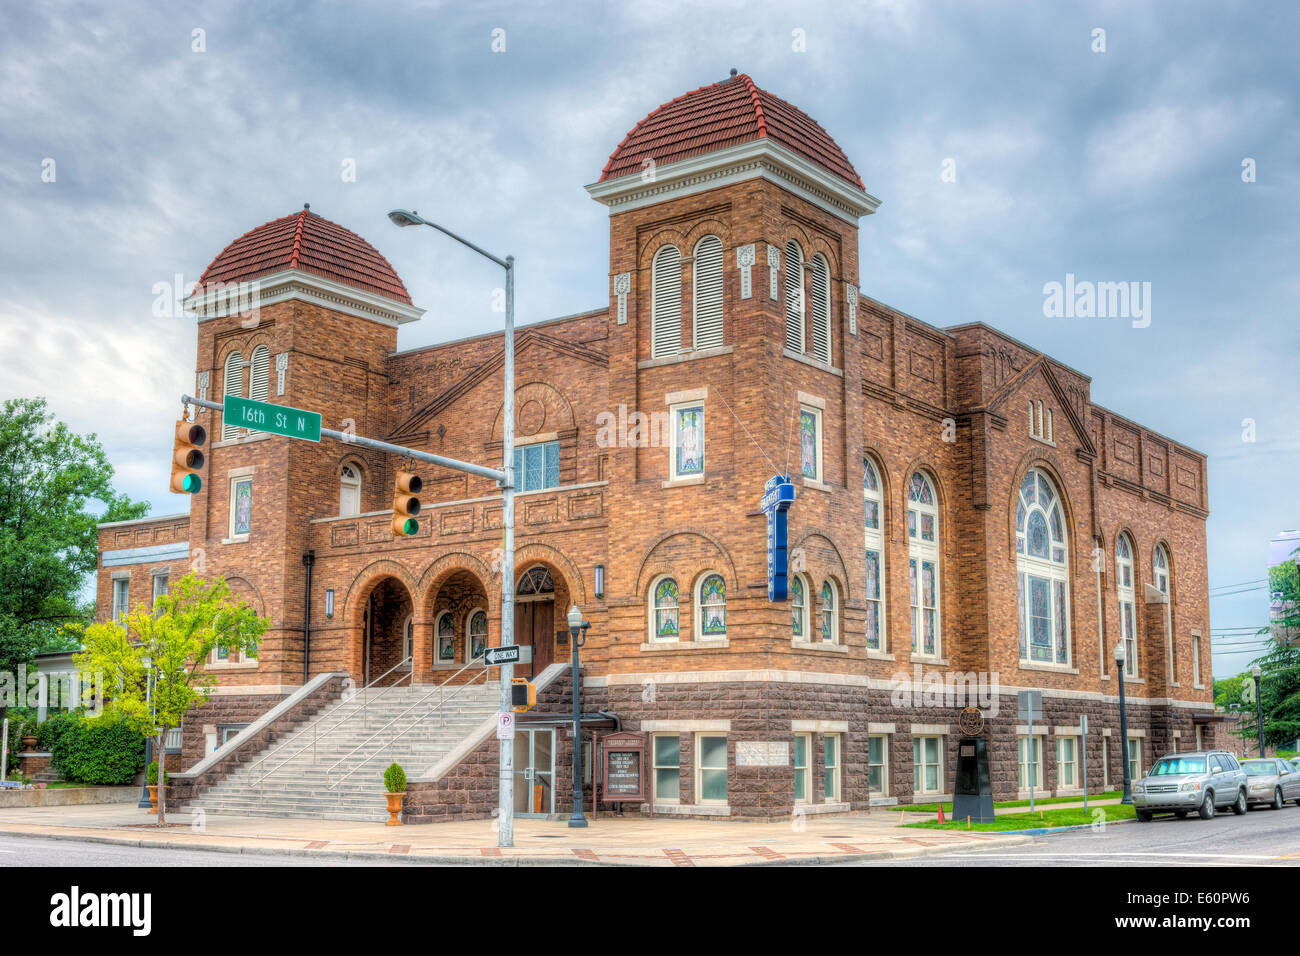 The 16th Street Baptist Church was the site of the racially motivated bombings in 1963 in Birmingham, Alabama. - Stock Image